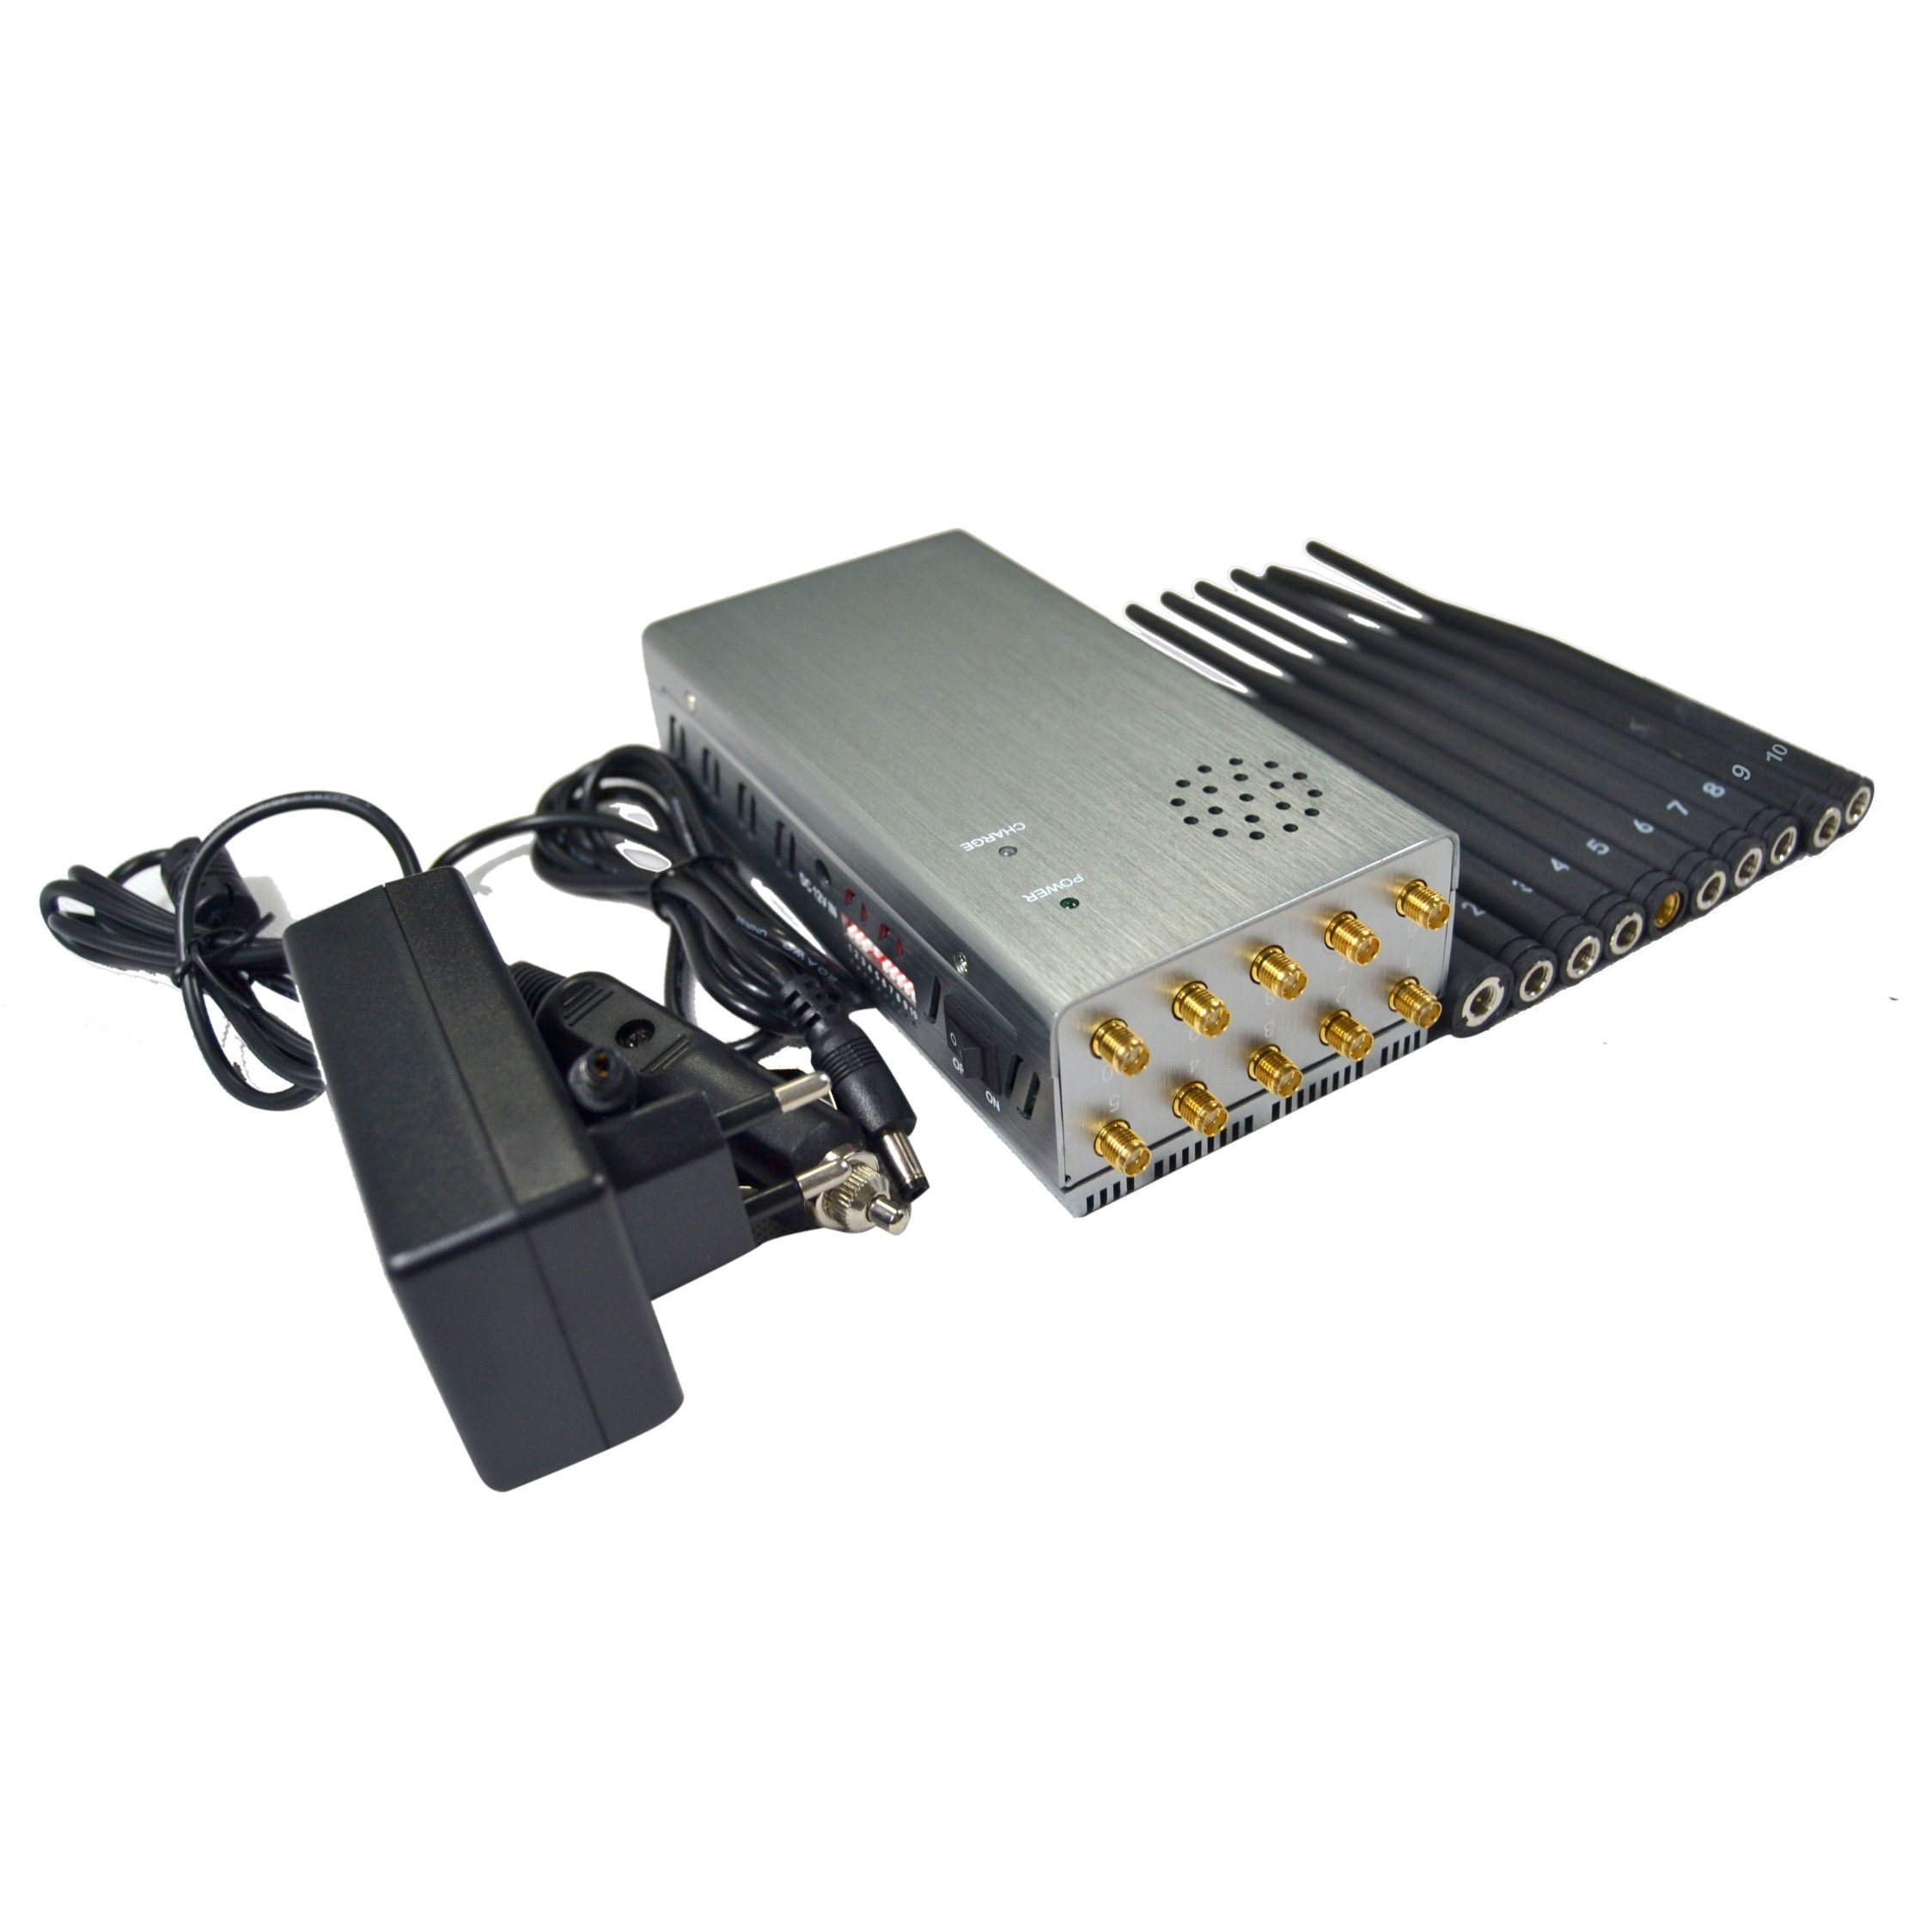 China Large Battery Volume Portable Jammers with 10 Antennas Car Using - China Mobile Phone Jammer, Full Band Signal Blockers